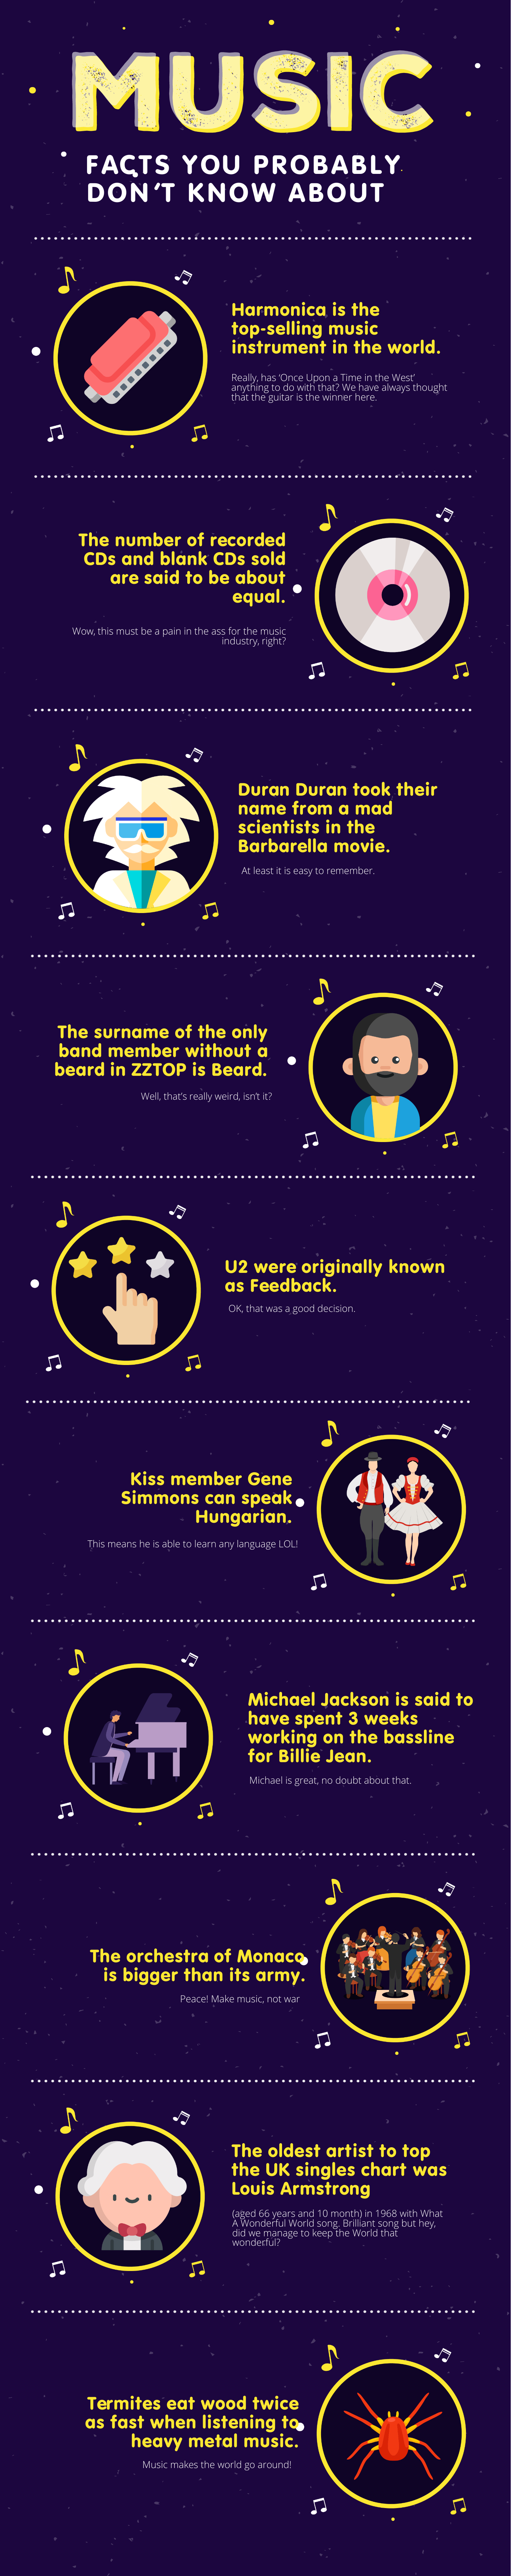 an infographic about music facts